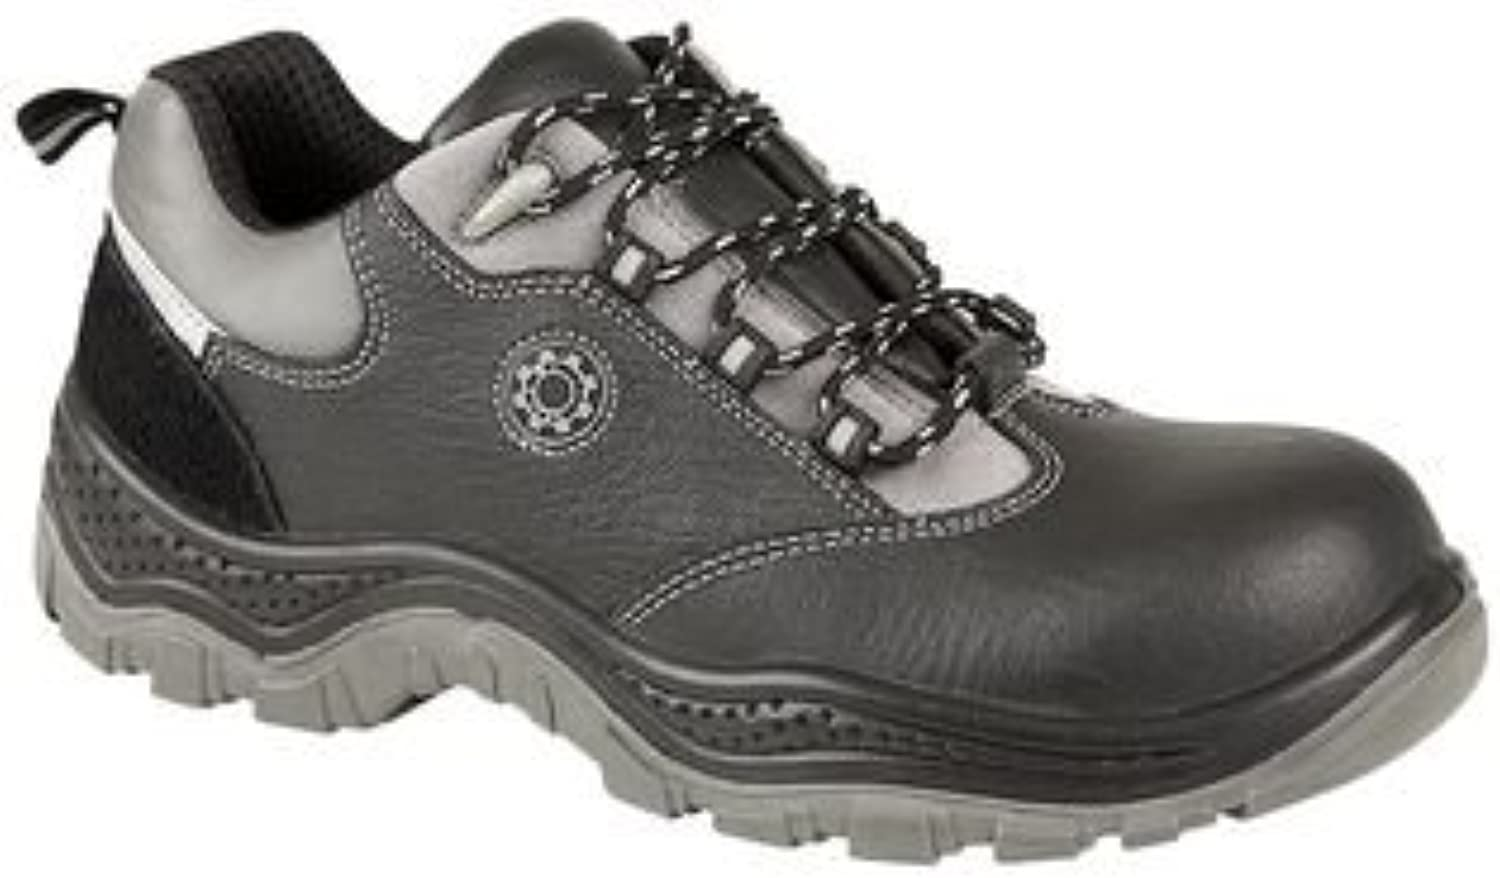 SECURITY LINE Safety schuhe, Composite Metal Free, 9 4117-9 4117-9  100% echte Gegengarantie